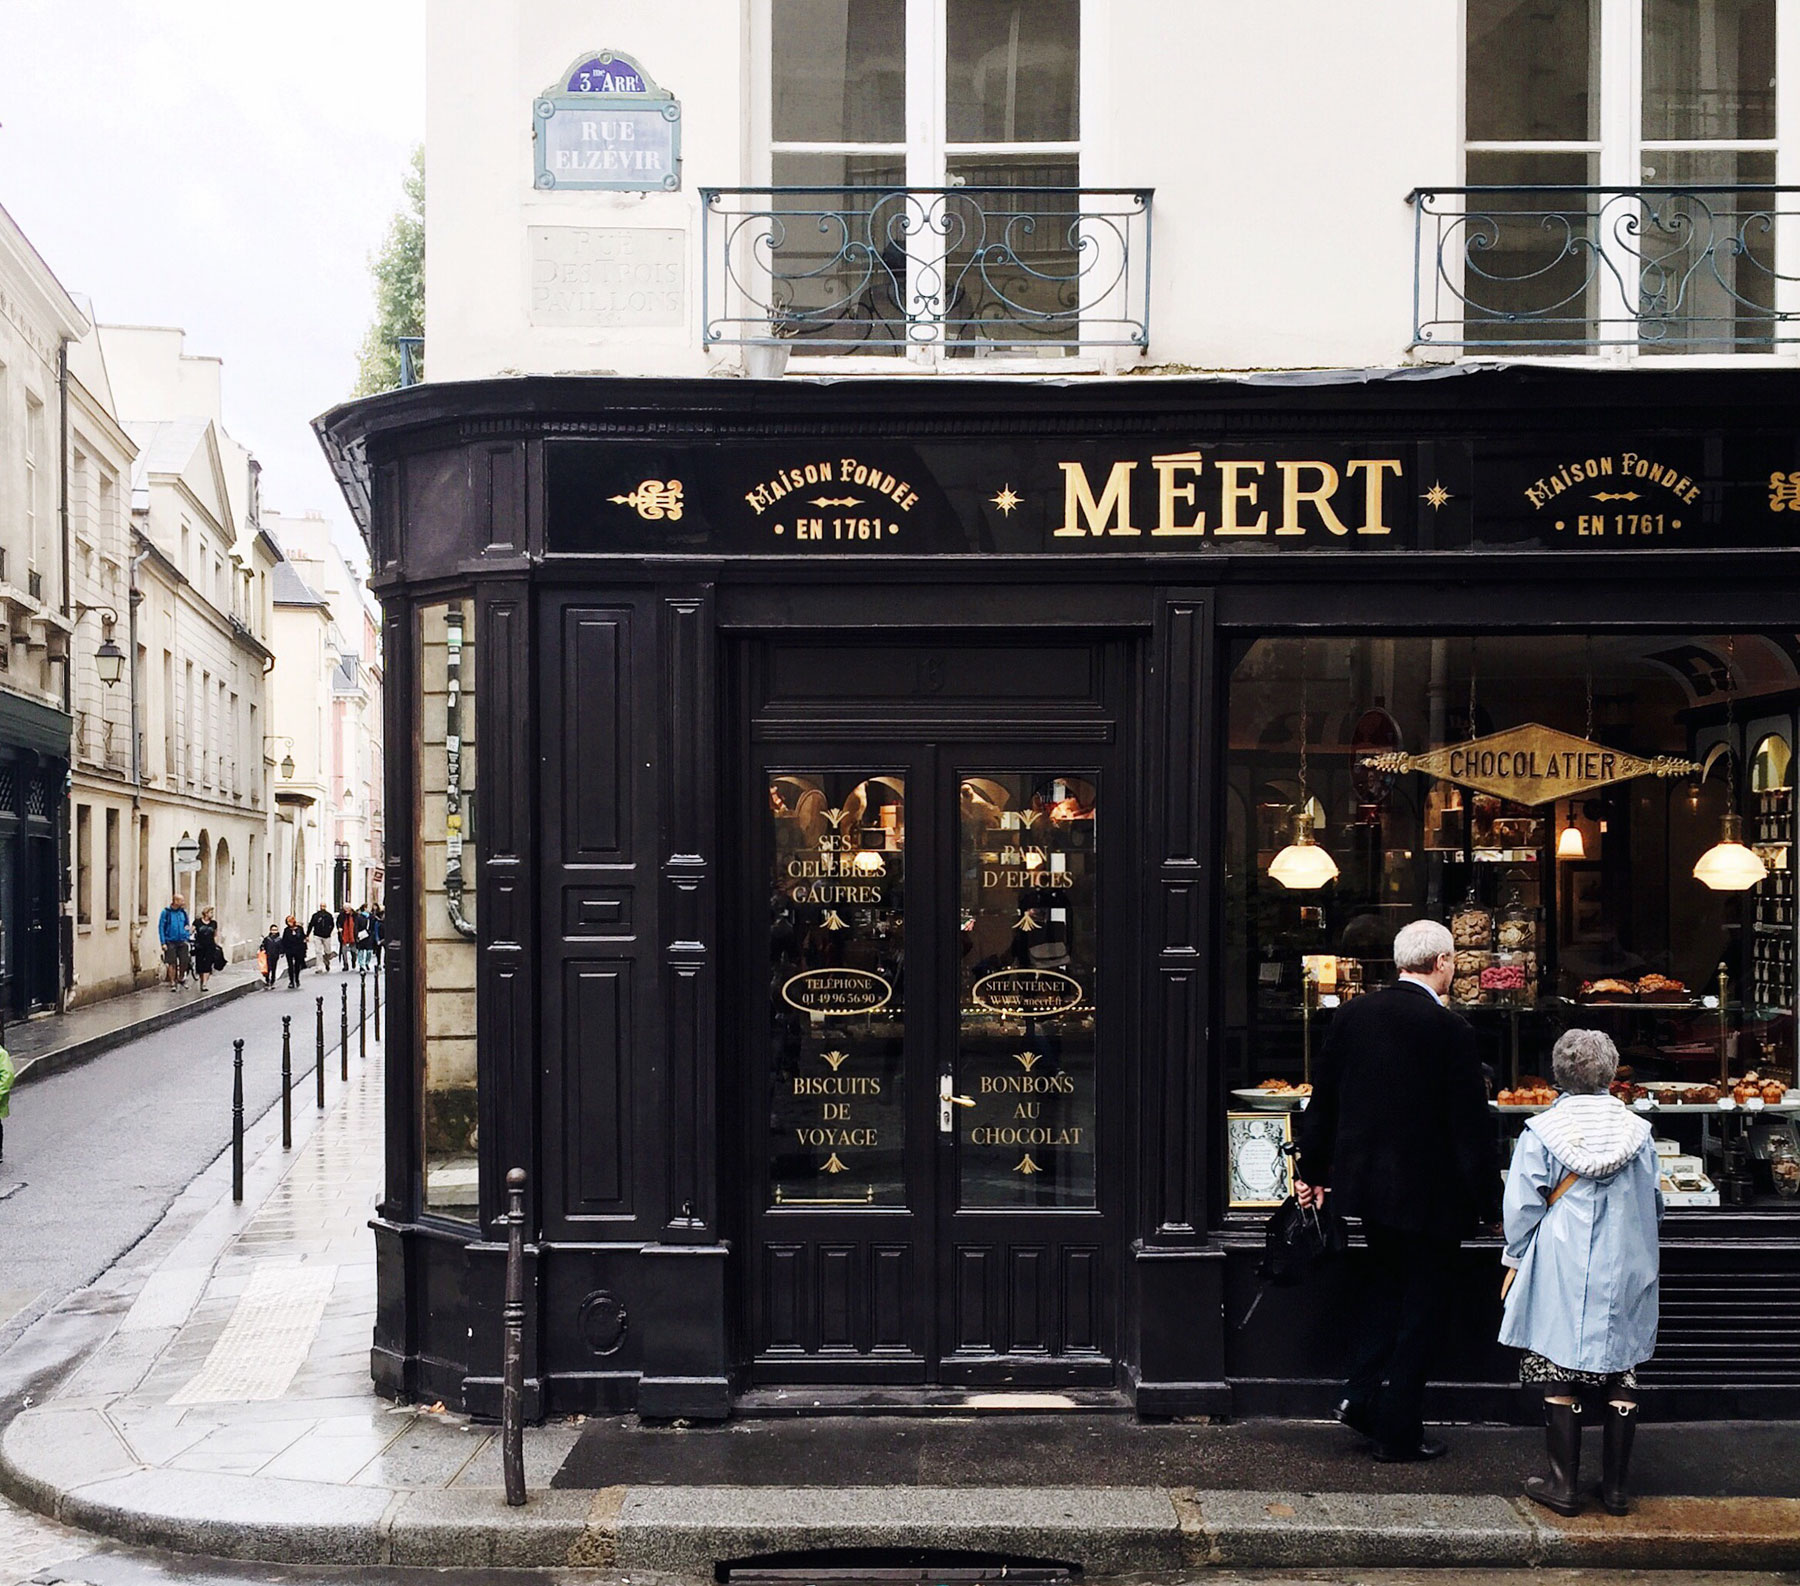 Lighting Stores In Paris: 10 Amazing New Places I Discovered In Paris